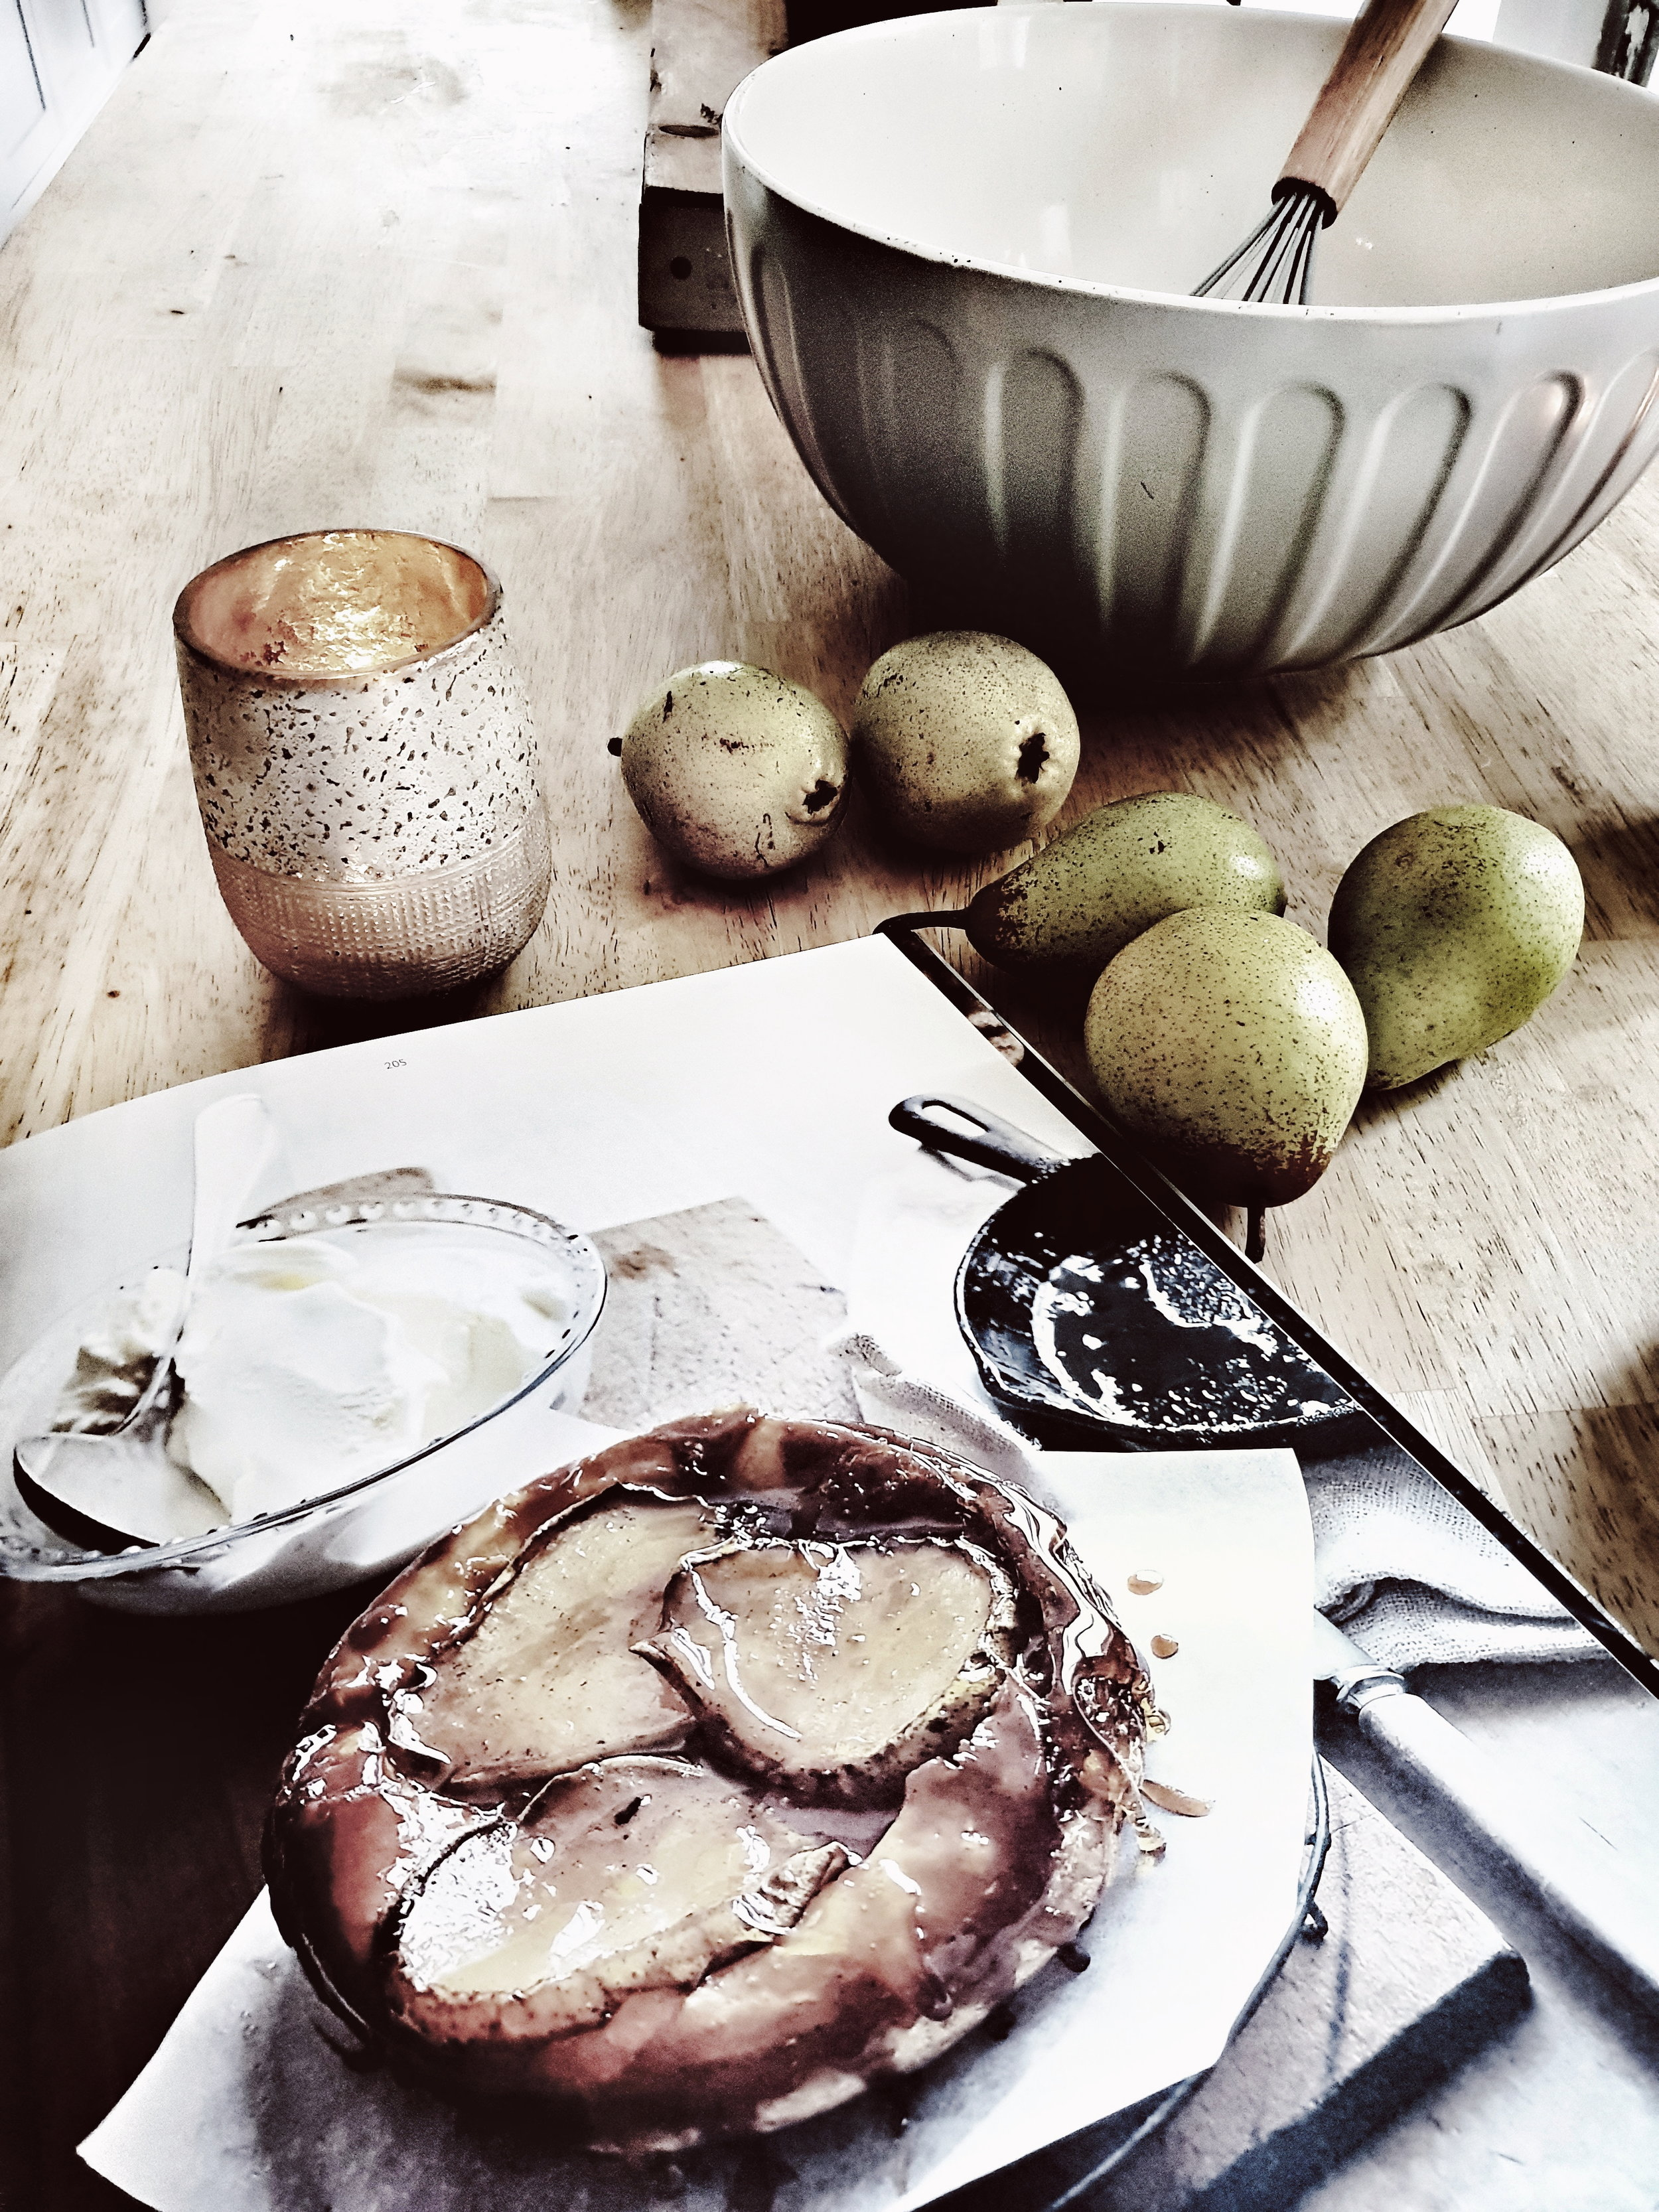 Bowl  and whisk pictured from the Rural Retreat range. Behold the Maple Pear Tart Tatin of dreams